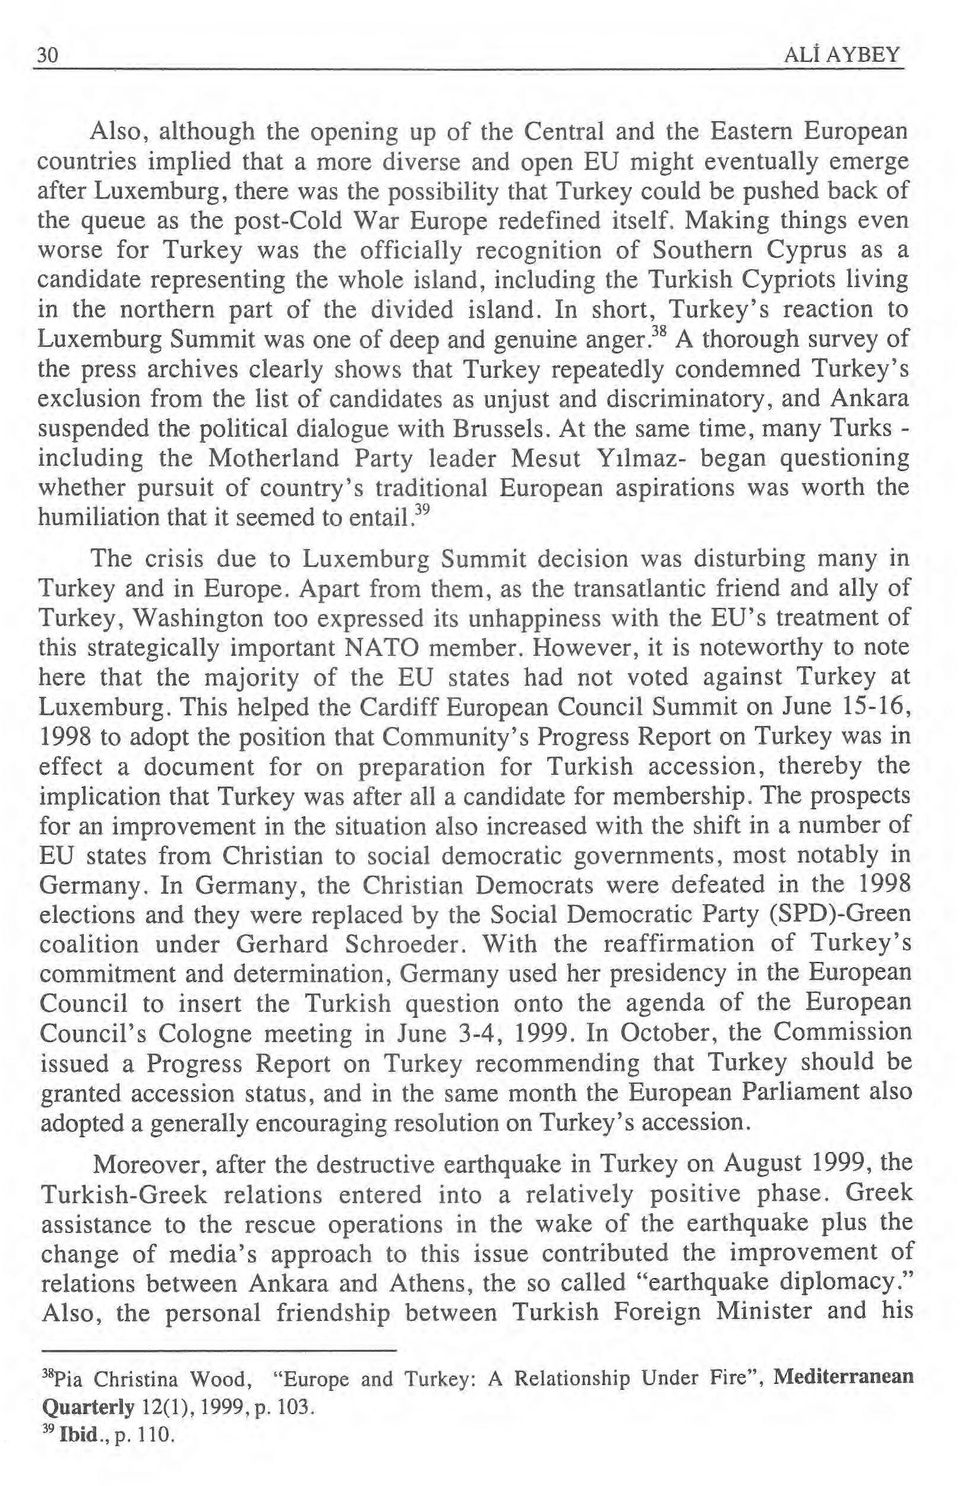 Making things even worse for Turkey was the officially recognition of Southern Cyprus as a candidate representing the whole island, including the Turkish Cypriots living in the northern part of the